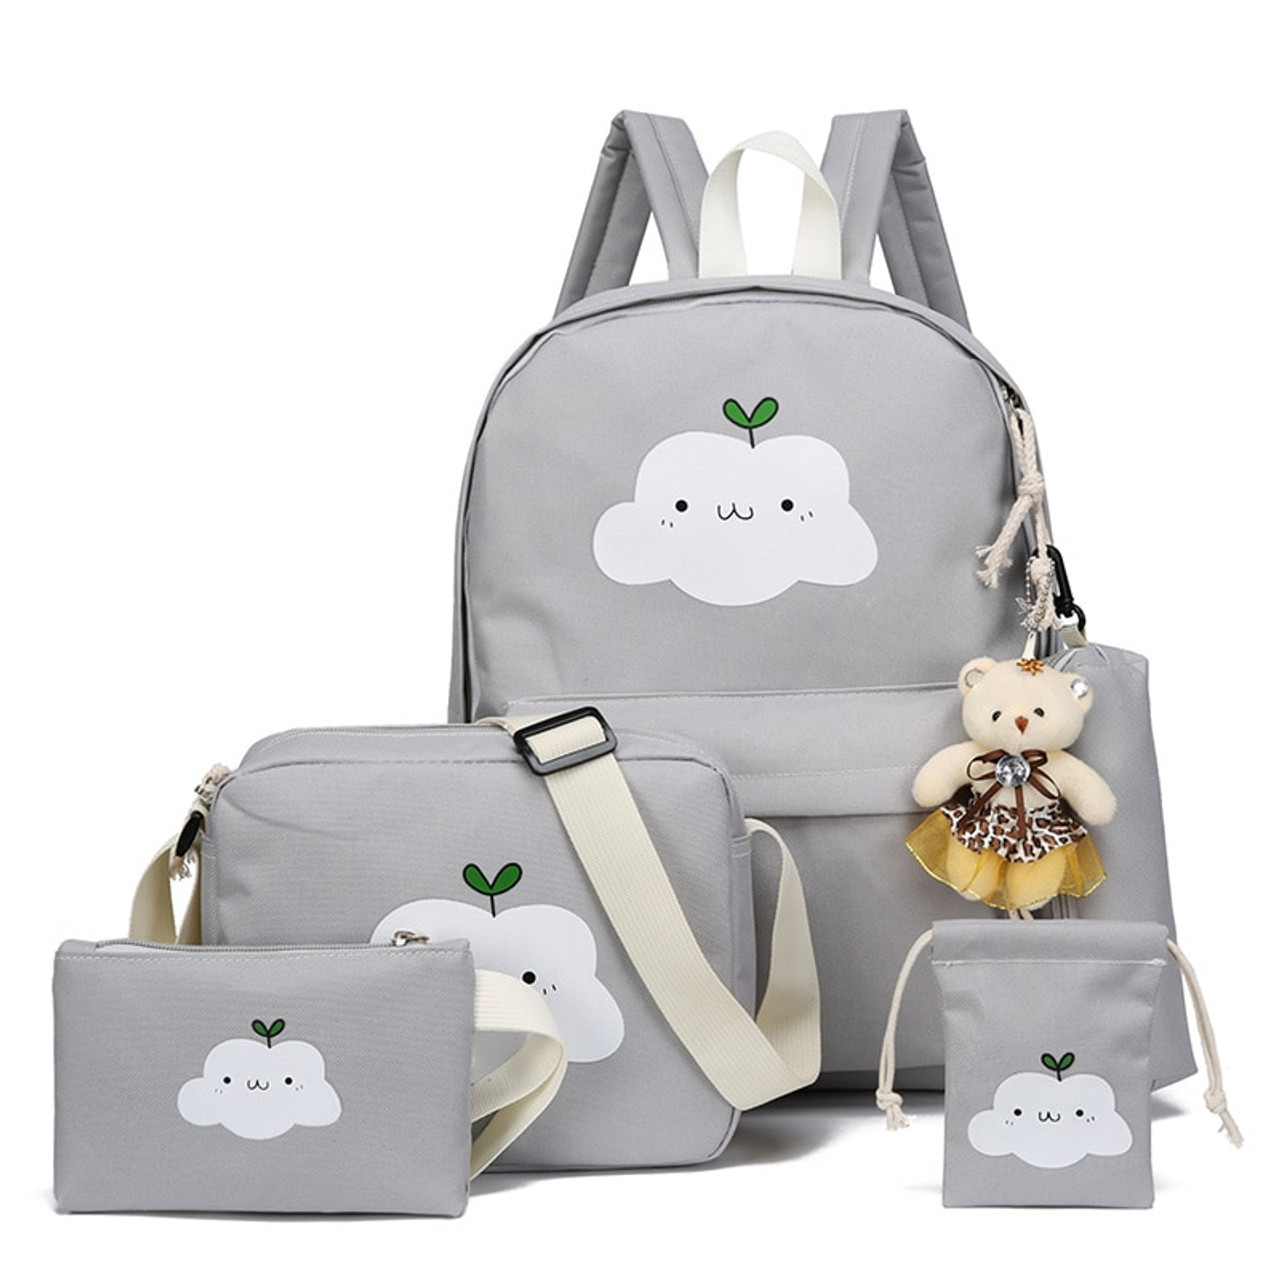 c07b31ff0 2018 New Fashion Nylon Backpack Schoolbags School For Girl Teenagers Casual  Children Travel Bags Rucksack Cute ...